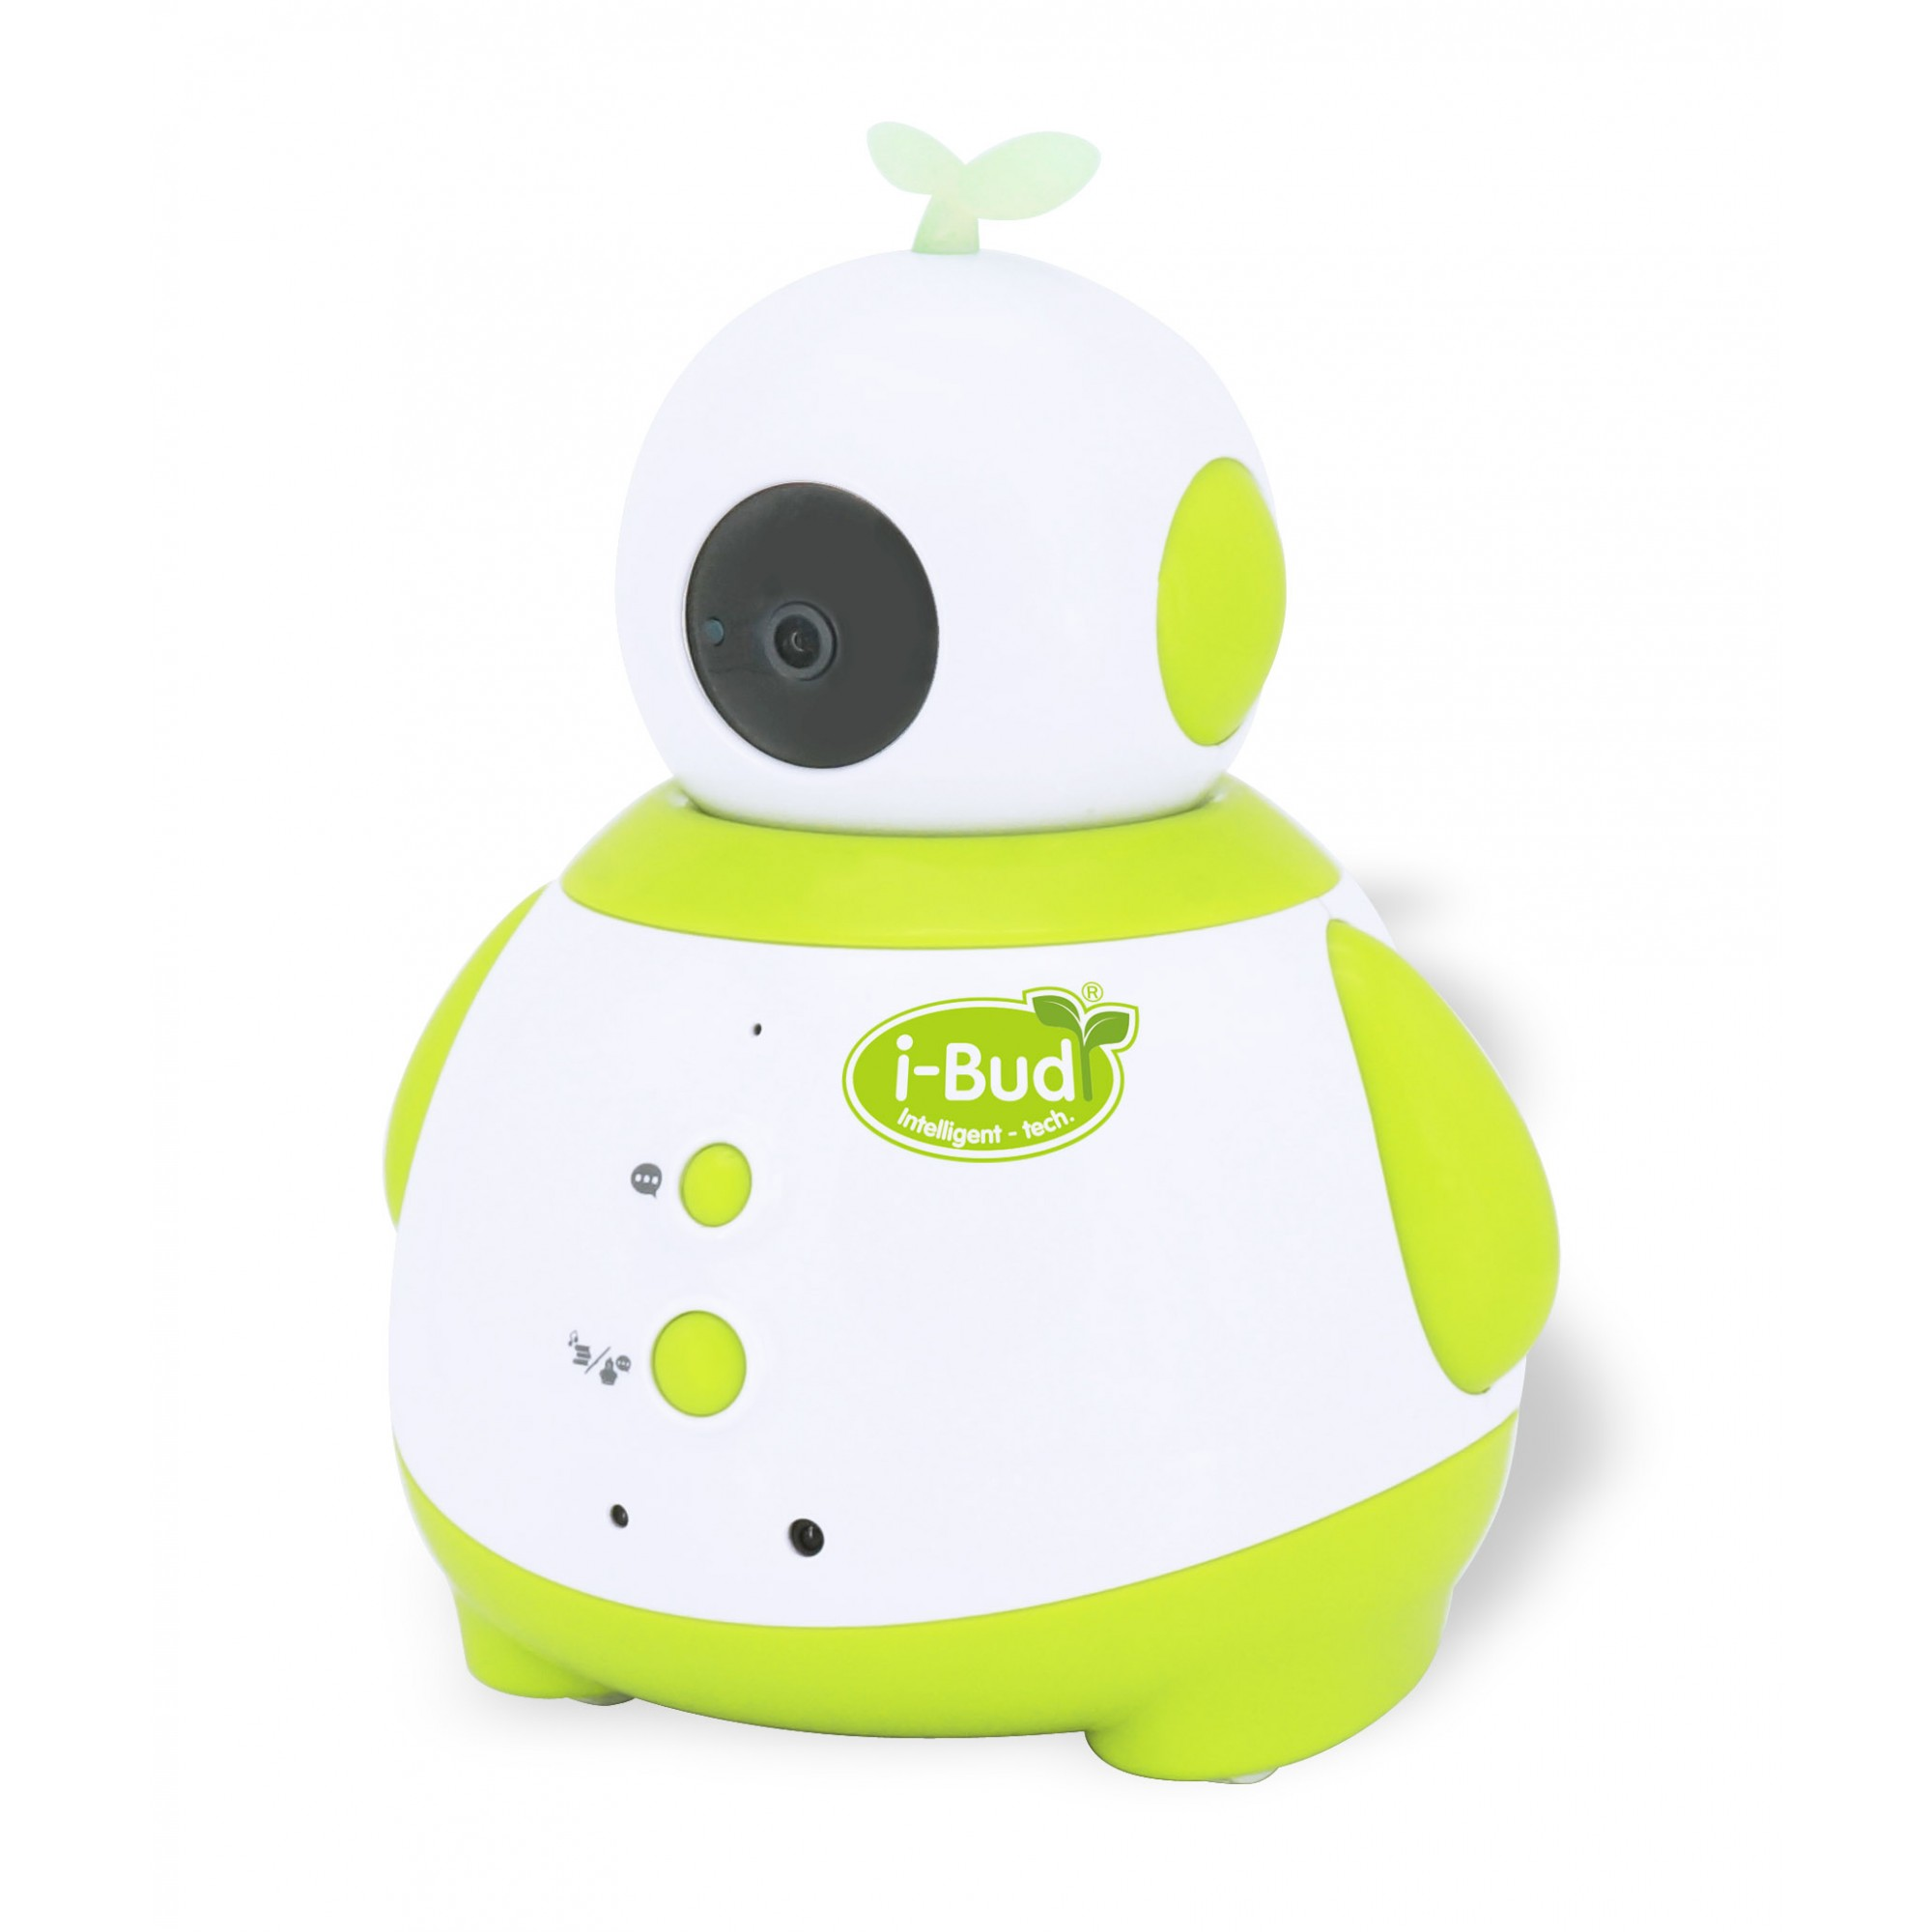 I-Bud Intelligent Nursing Robot